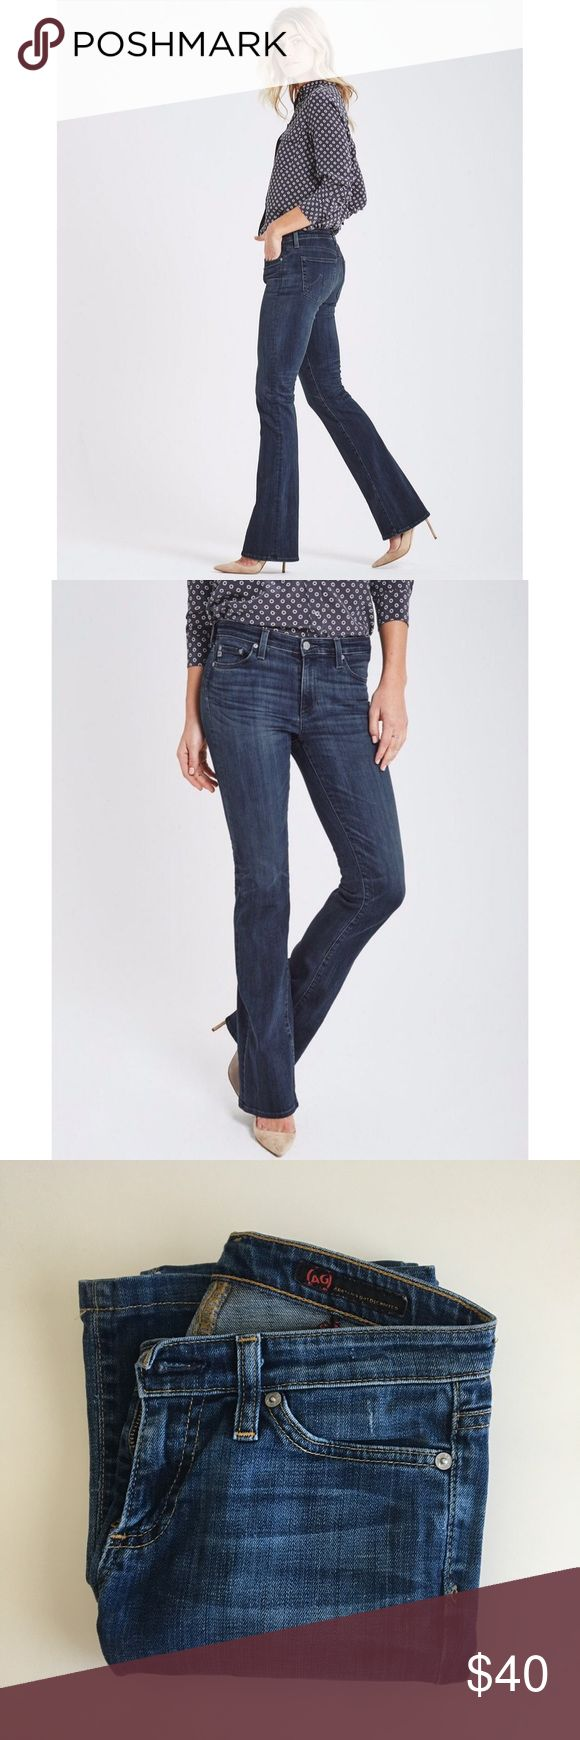 """AG Jeans The Angel Our classic bootcut jean features a fitted shape from hip to knee and opens into a gentle flare at the hem. Washed for a deep indigo shade with a gently faded finish. Zip fly, button closure. Inseam 29 1/2"""" Ag Adriano Goldschmied Jeans Boot Cut"""